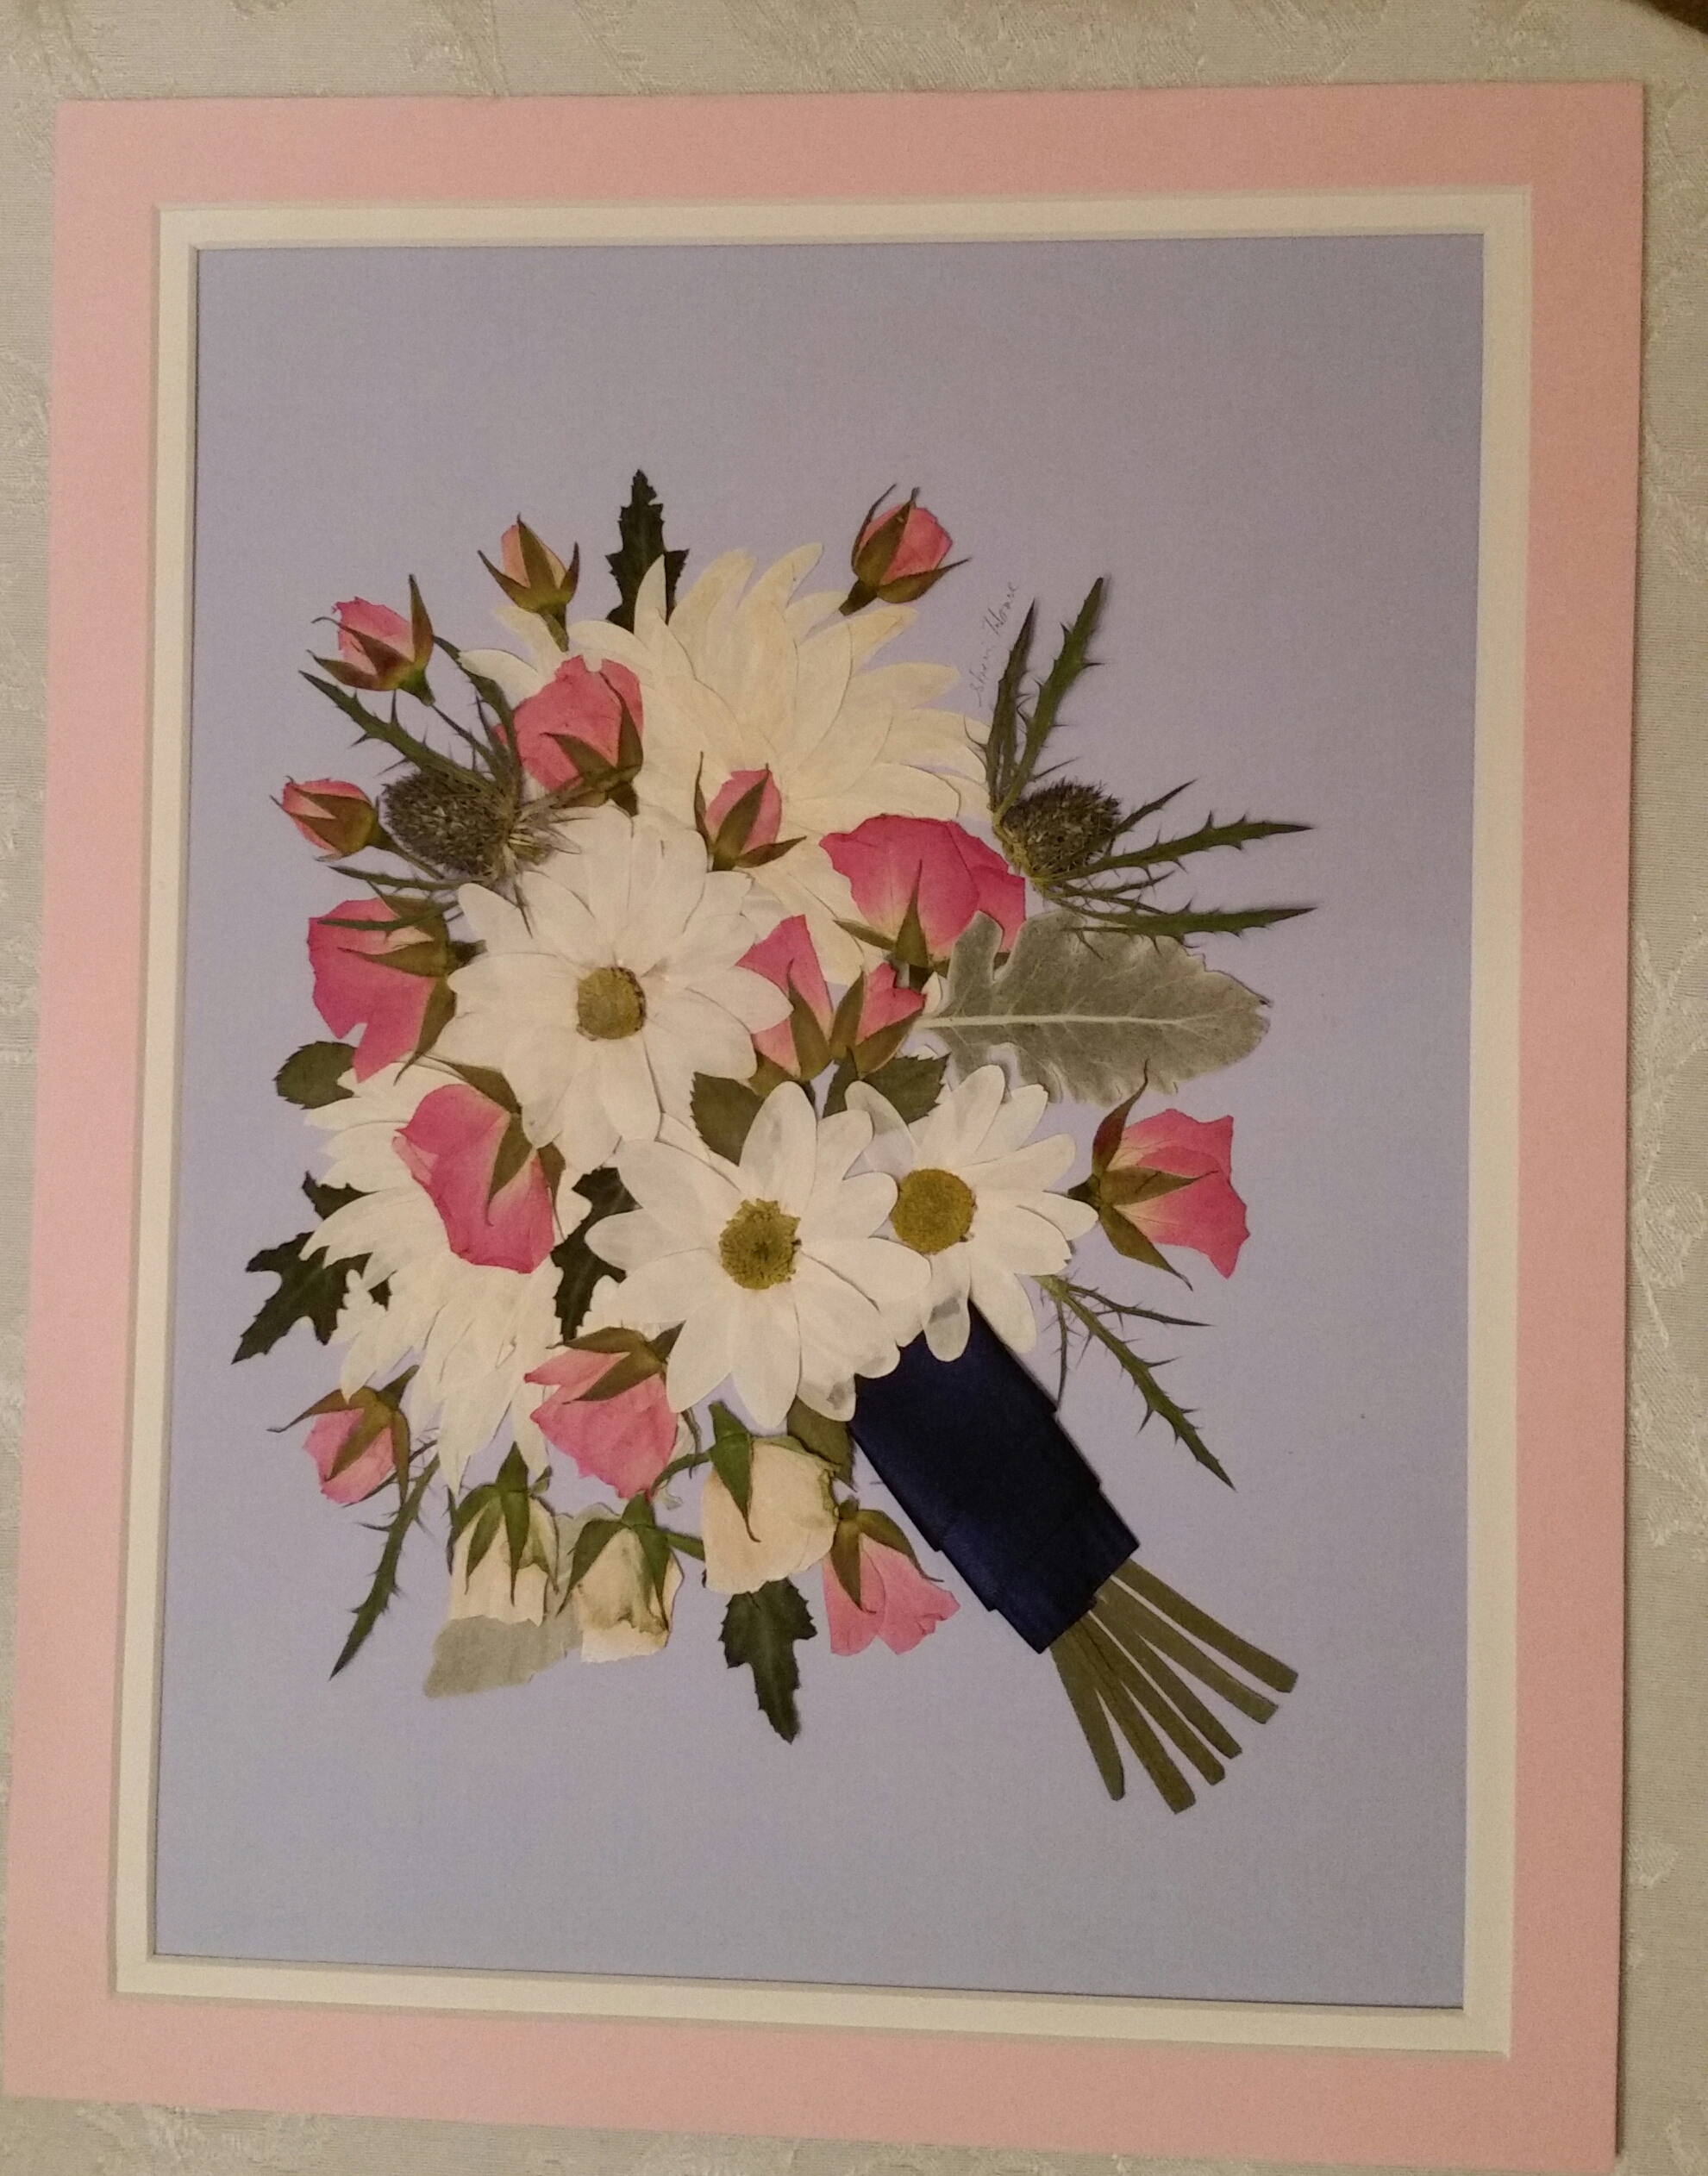 Pressed and Framed | Pressed Floral Memories